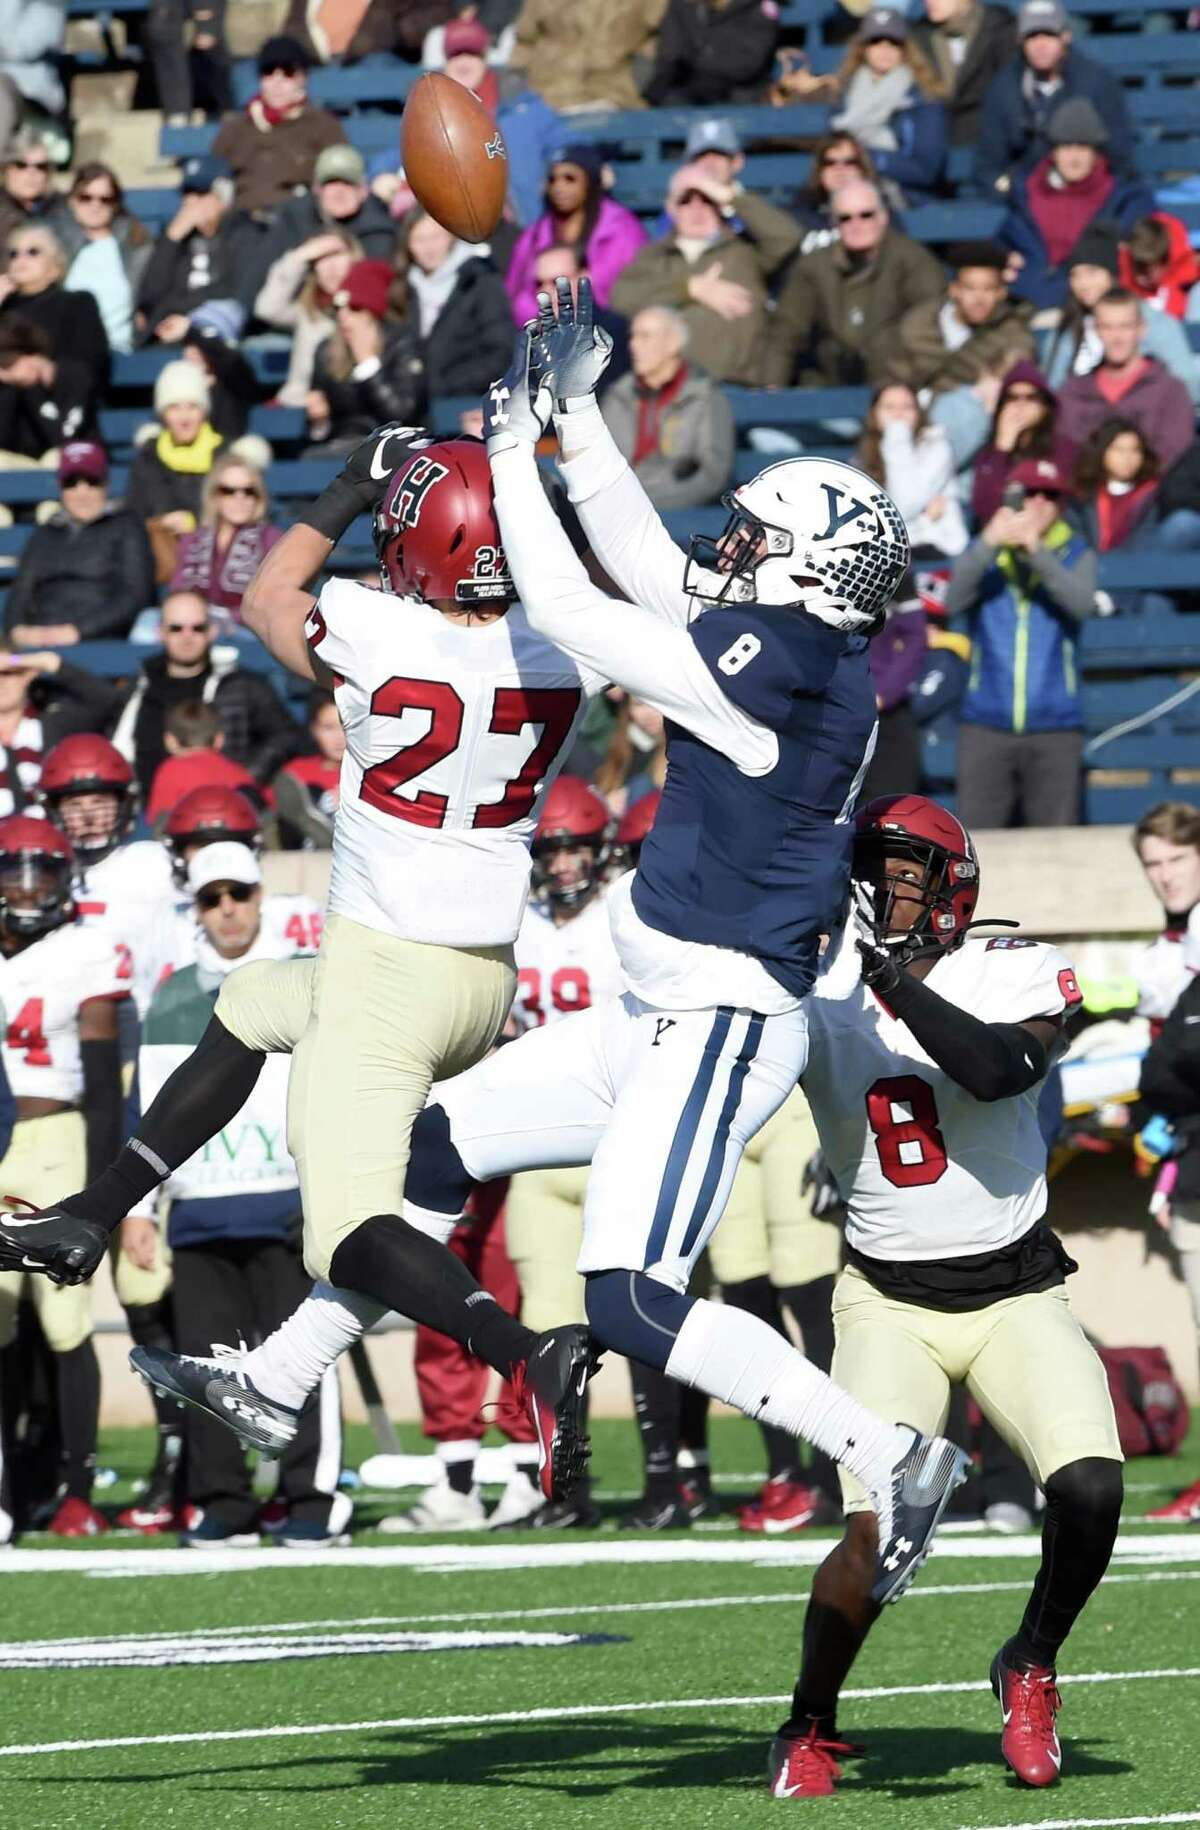 Harvard's Cody Thompson breaks up a pass play to Yale's Patrick Conte in the first half Saturday in New Haven.